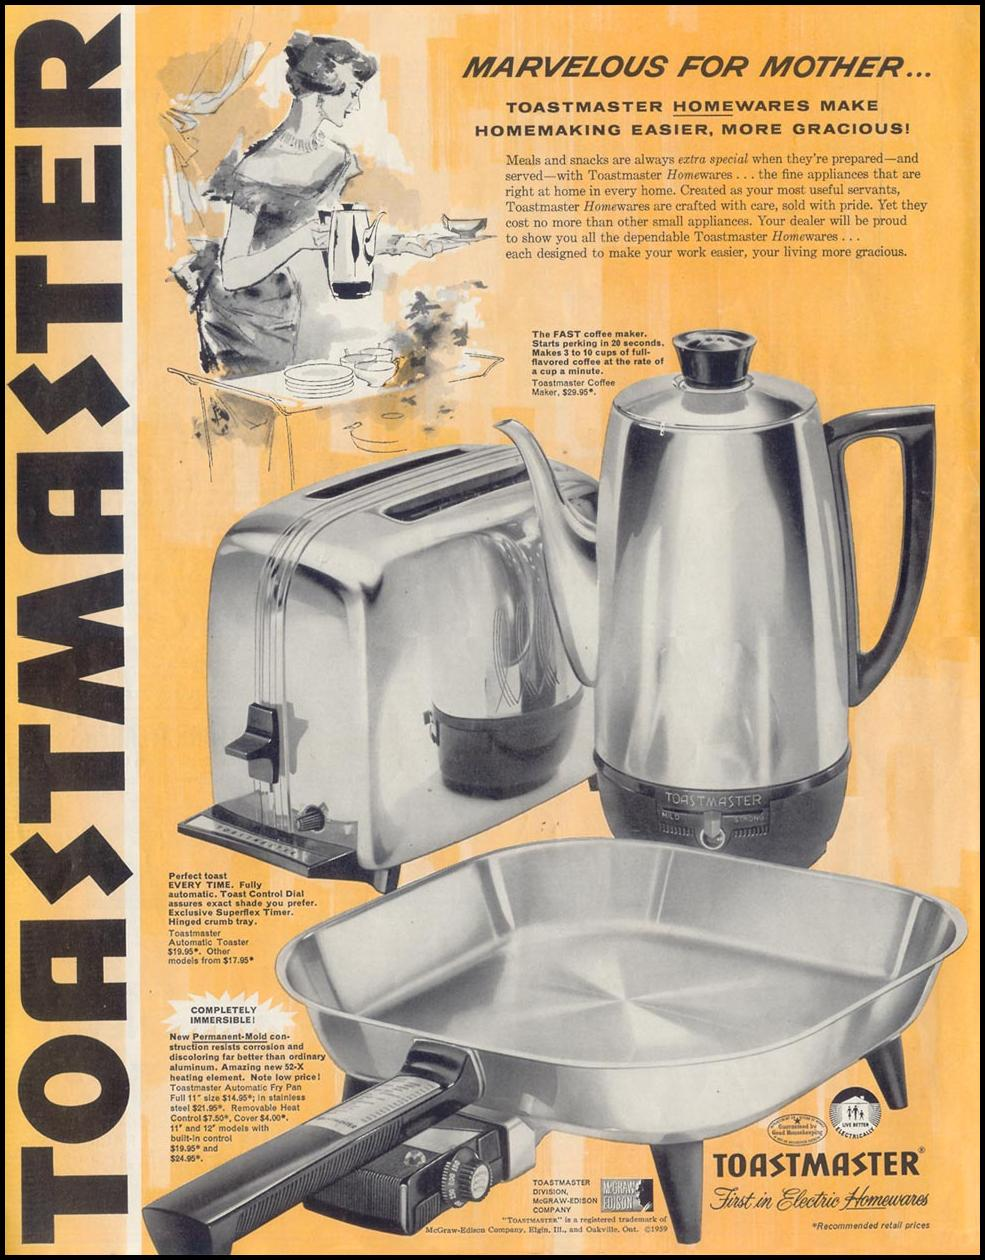 TOASTMASTER KITCHEN APPLIANCES SATURDAY EVENING POST 05/02/1959 p. 96